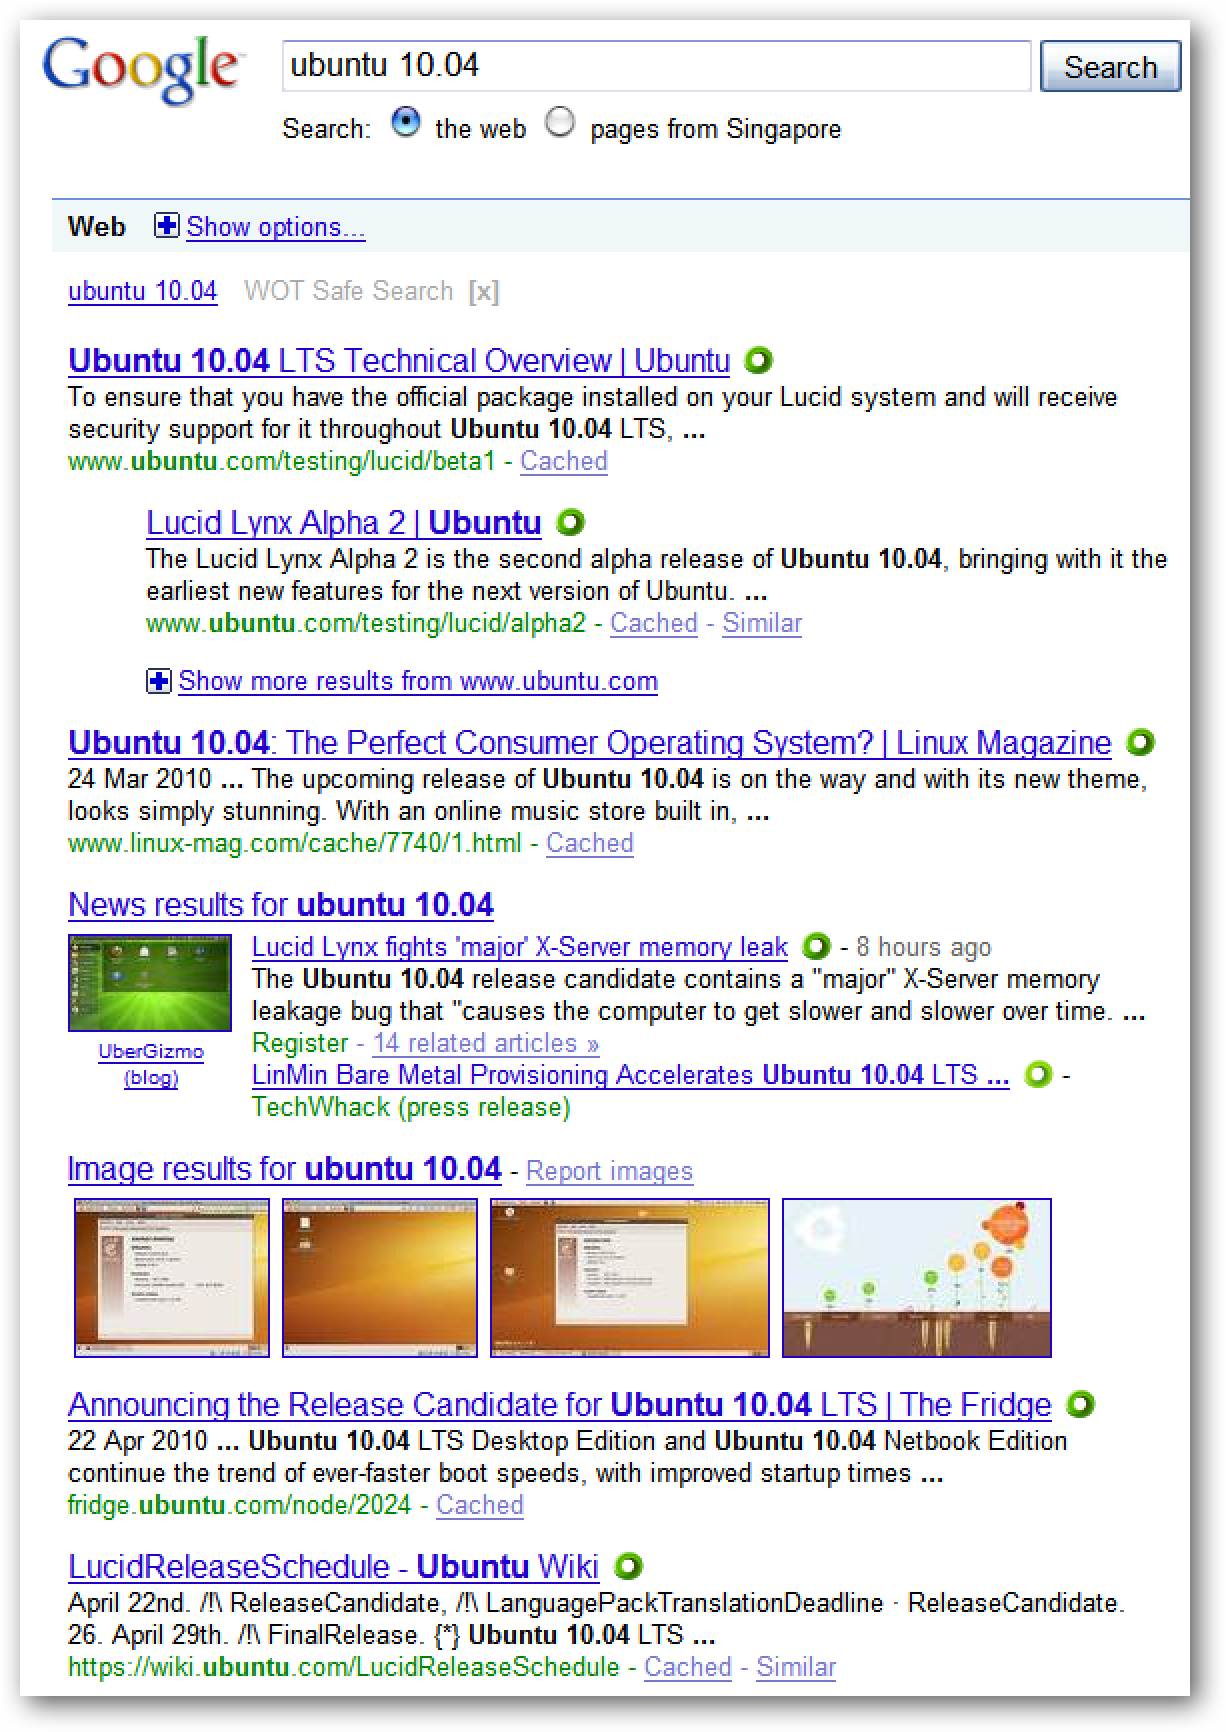 Change The Way Google Search Results Display In Firefox